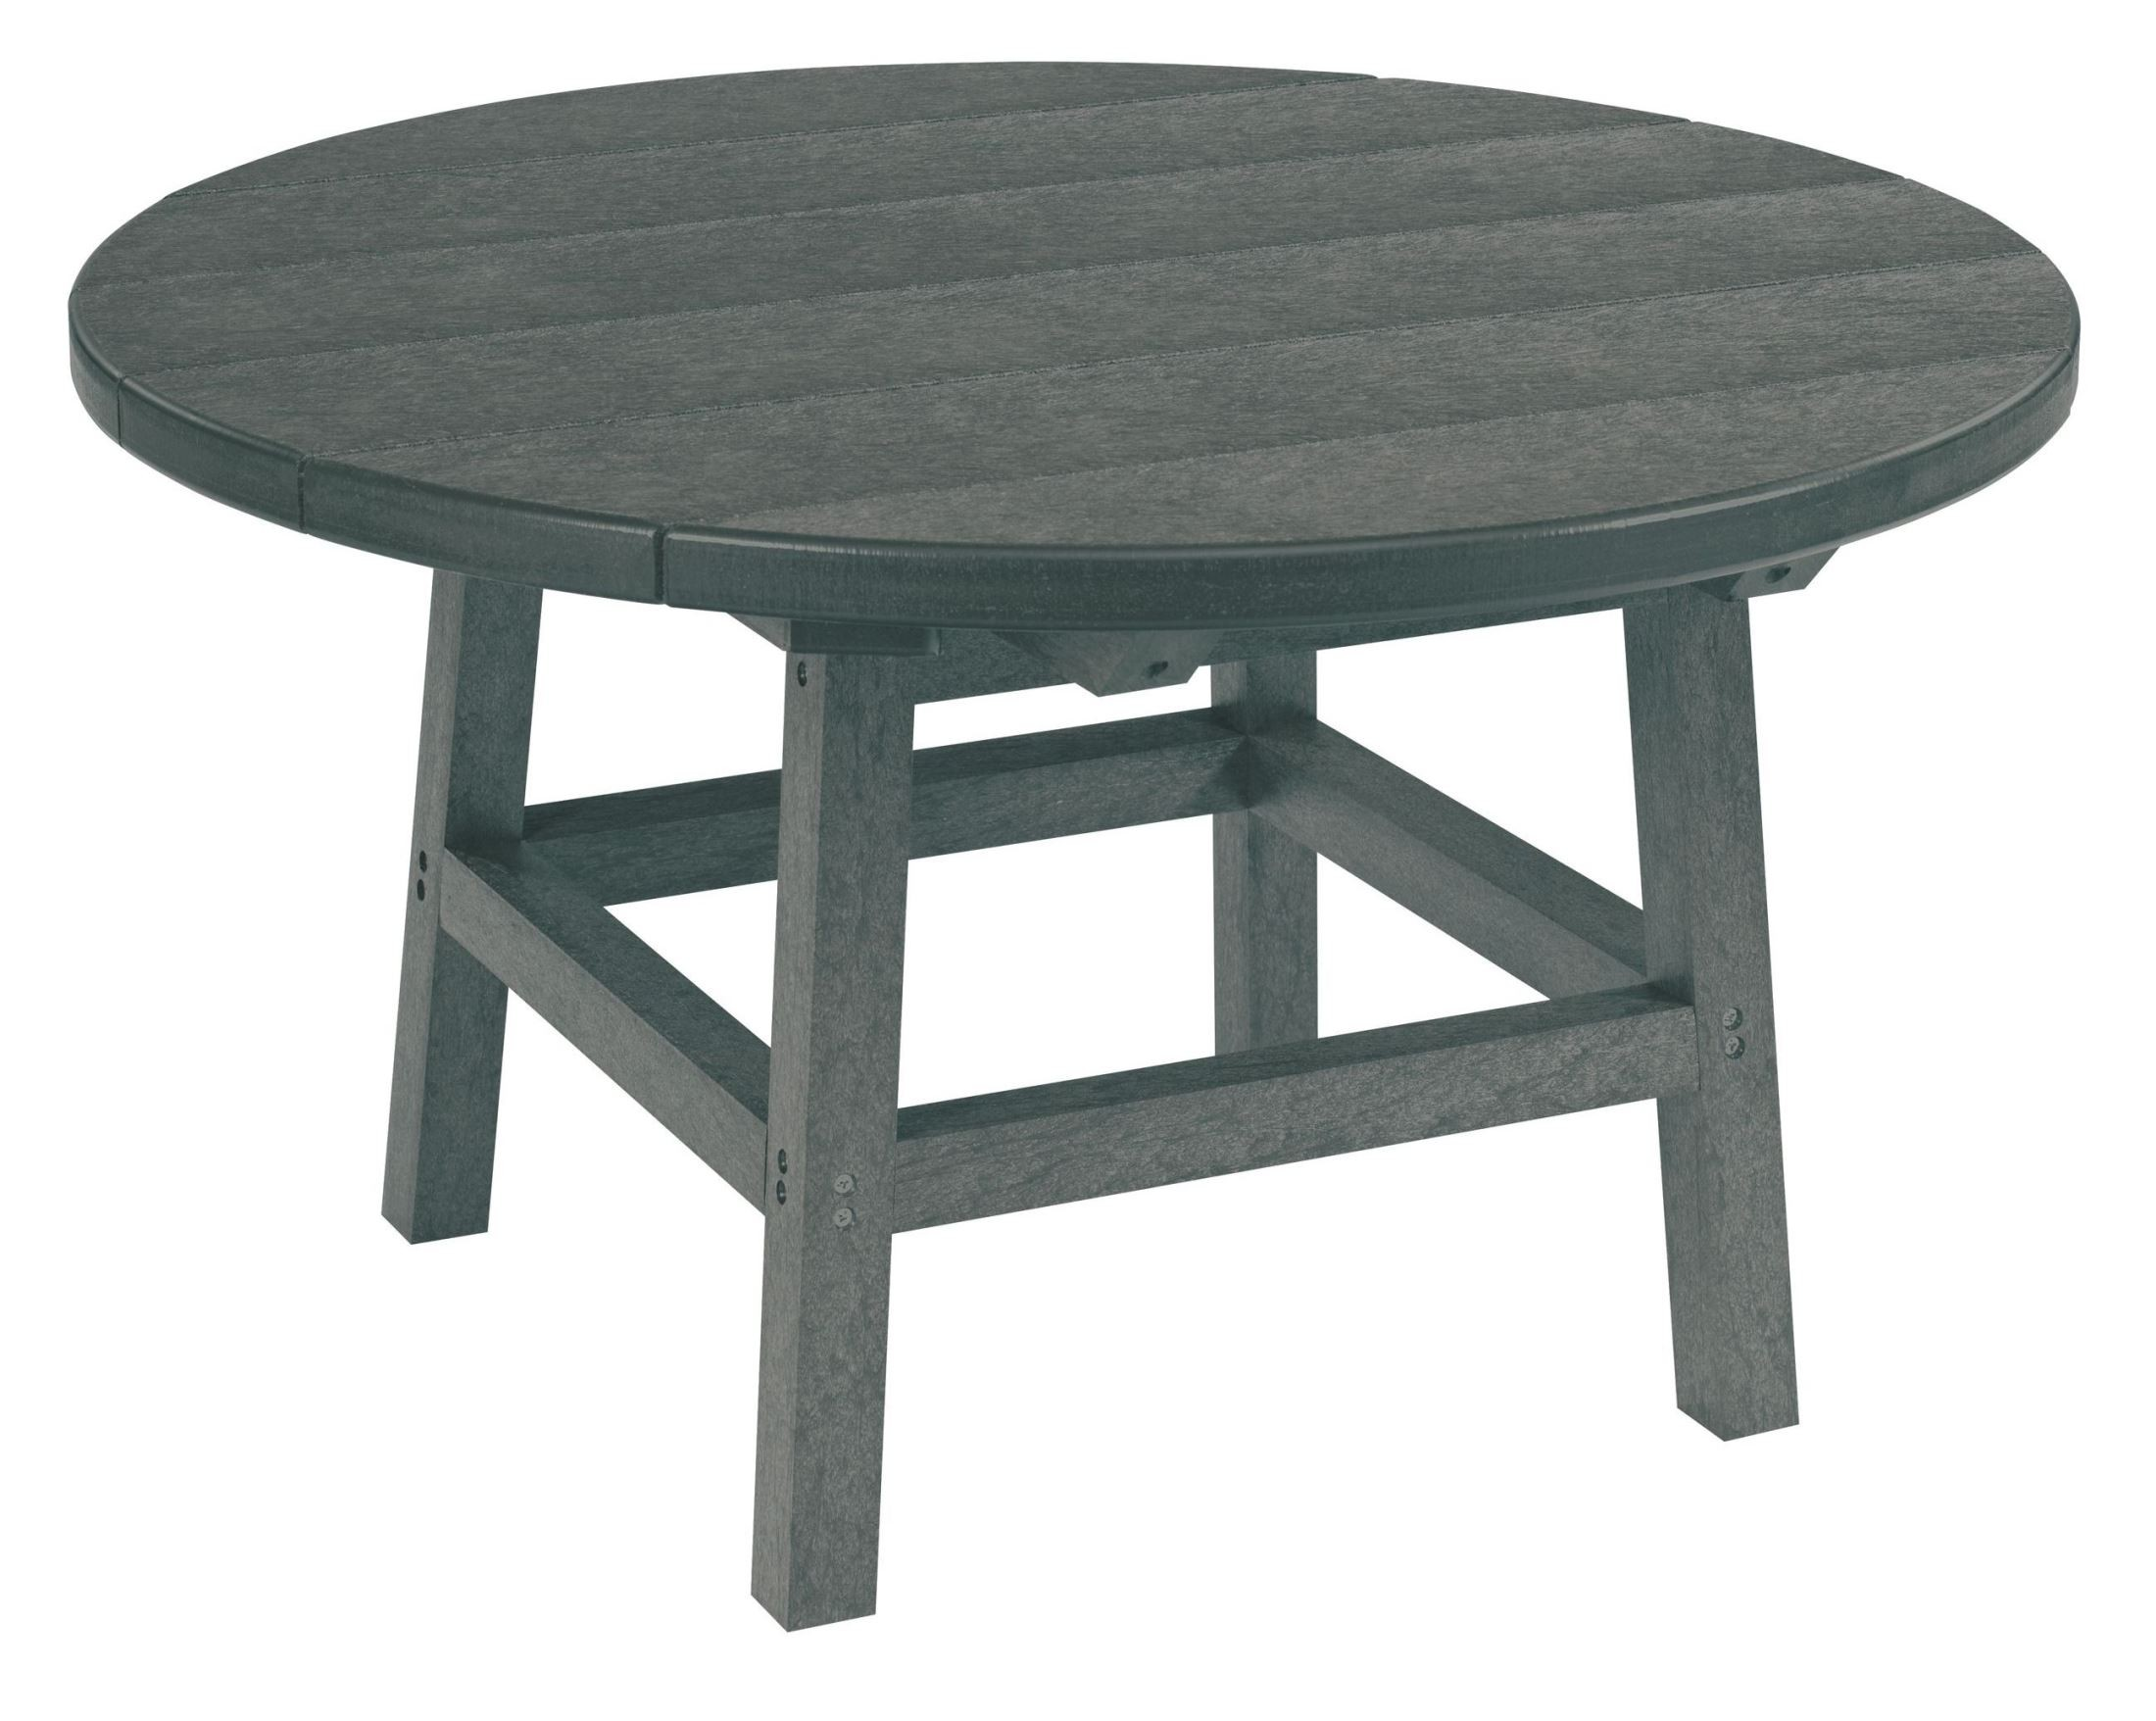 Generations Slate Gray 32 Round Leg Cocktail Table From Cr Plastic Tbt01 18 Coleman Furniture